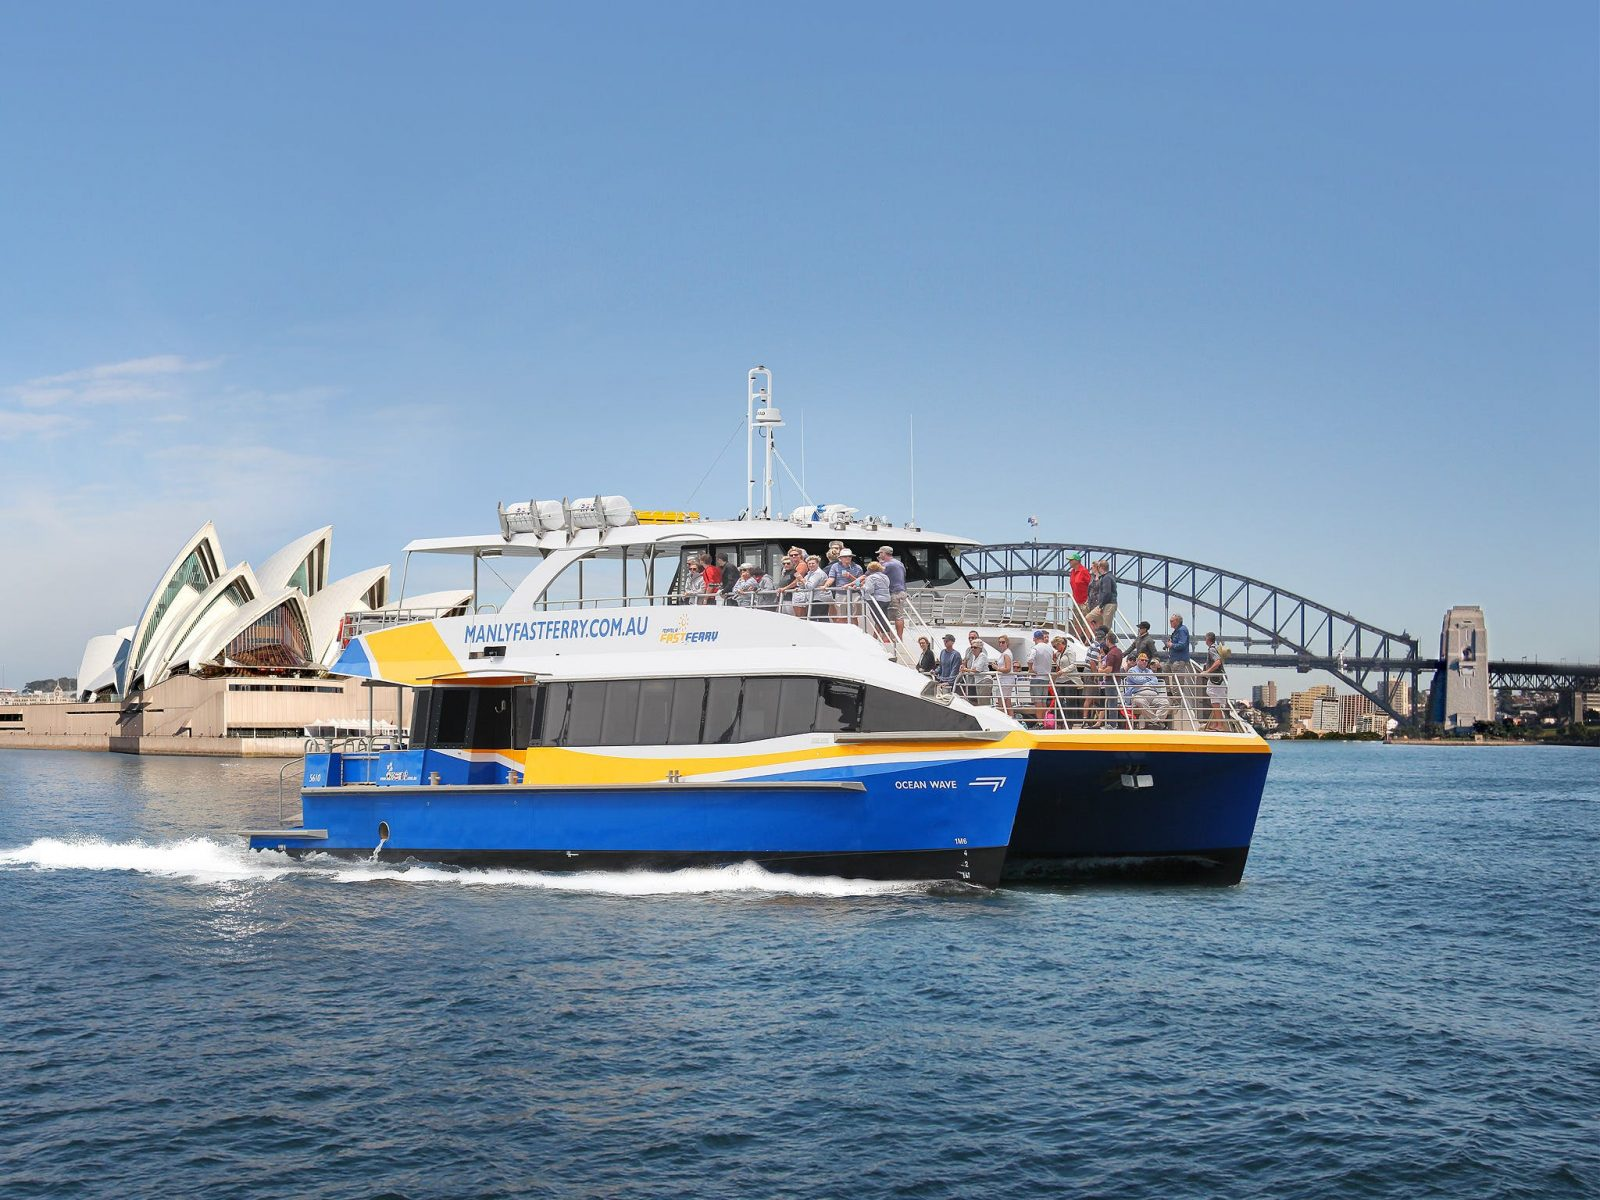 My Fast Ferry Vessel on Sydney Harbour